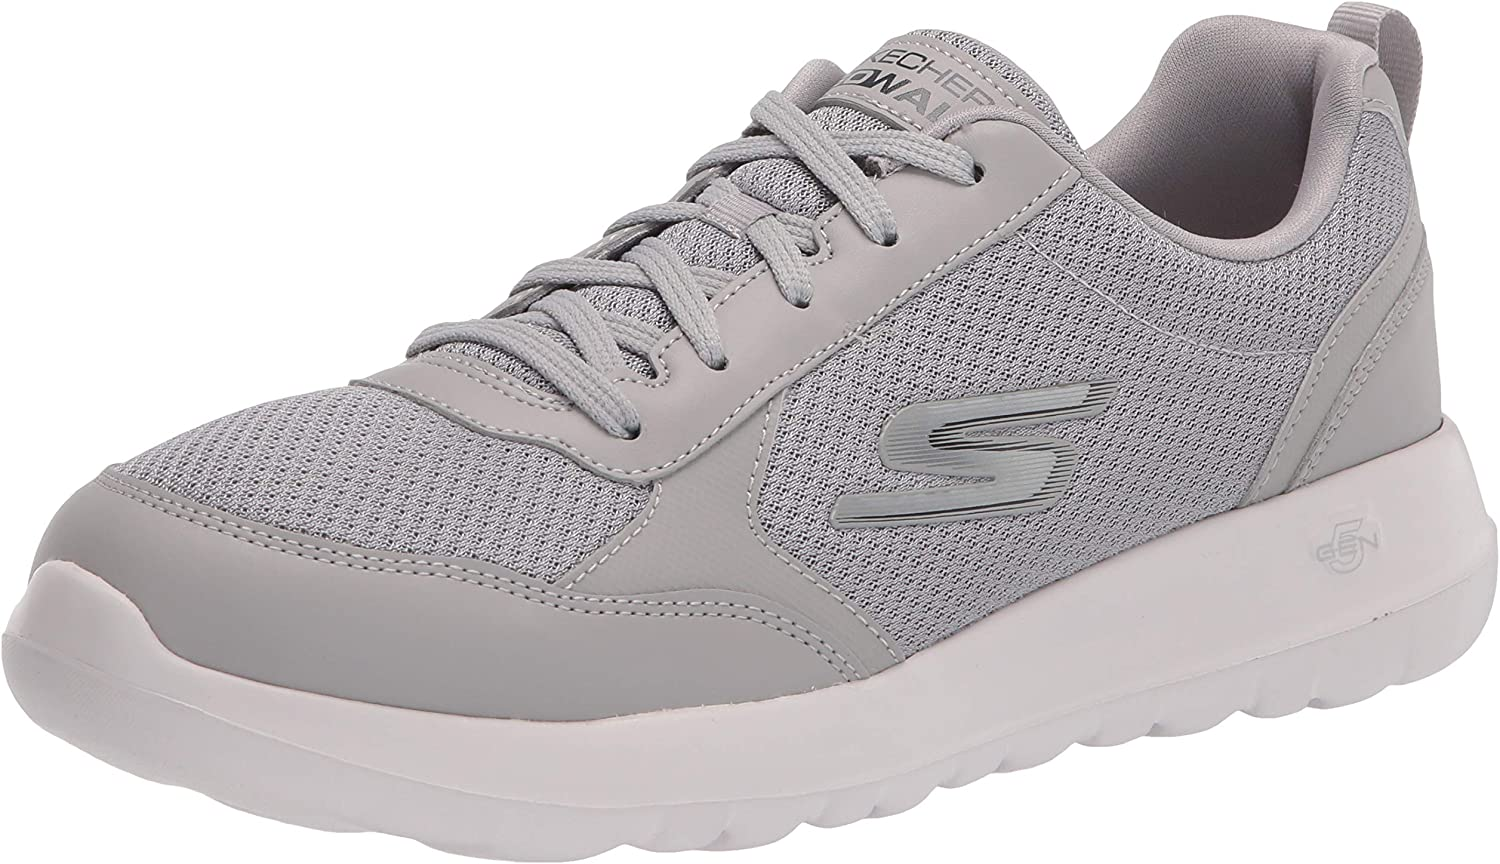 Skechers High quality Men's Gowalk Max-Athletic Workout Bargain Shoe Air with Walking